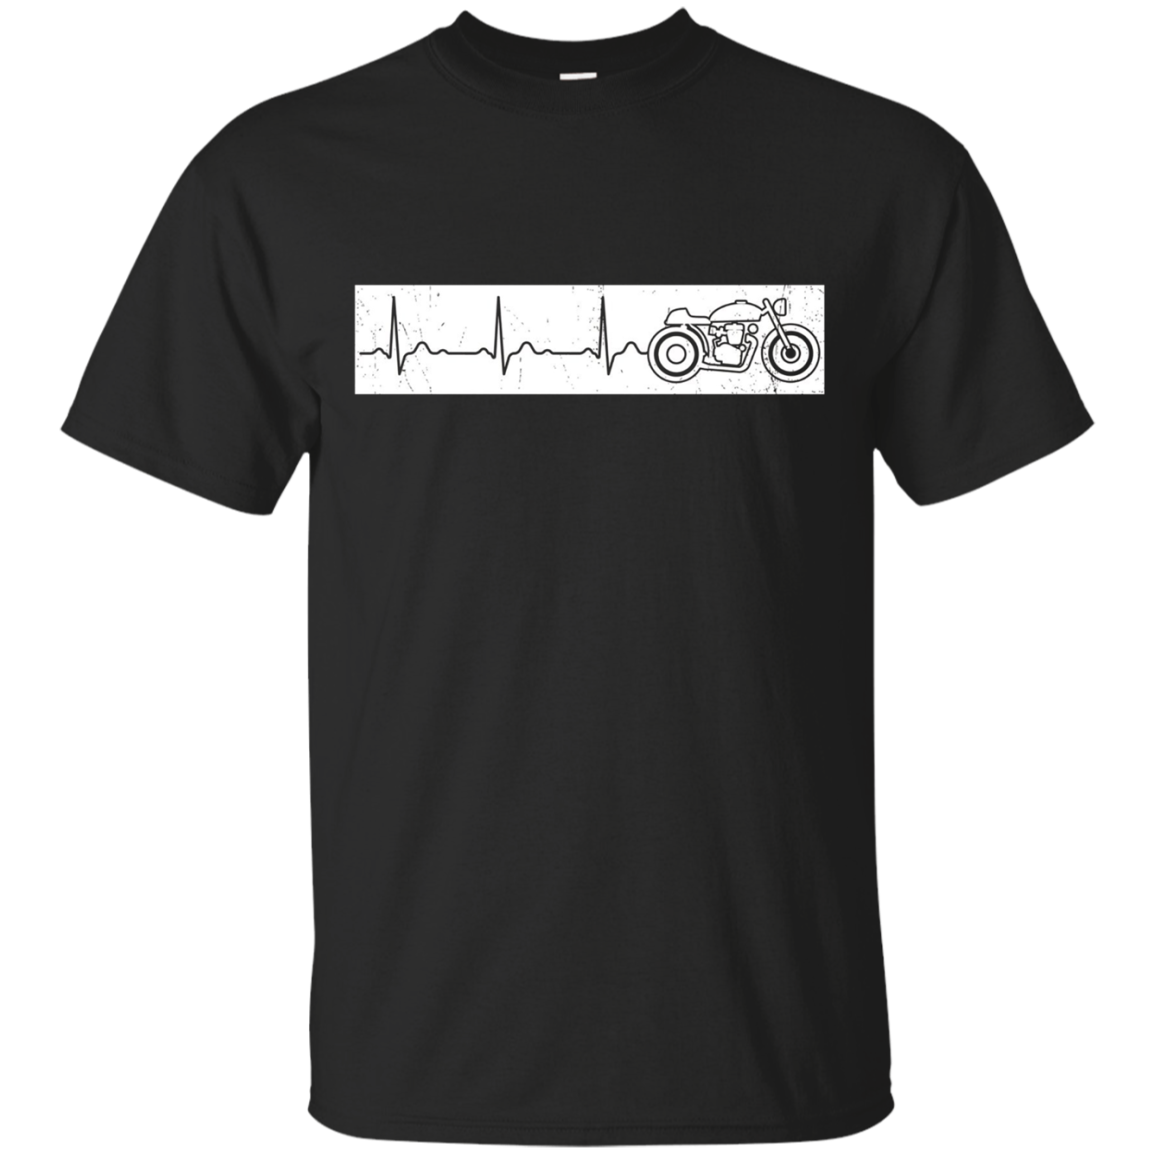 Motorcycle Heartbeat Motorcycle T-Shirt